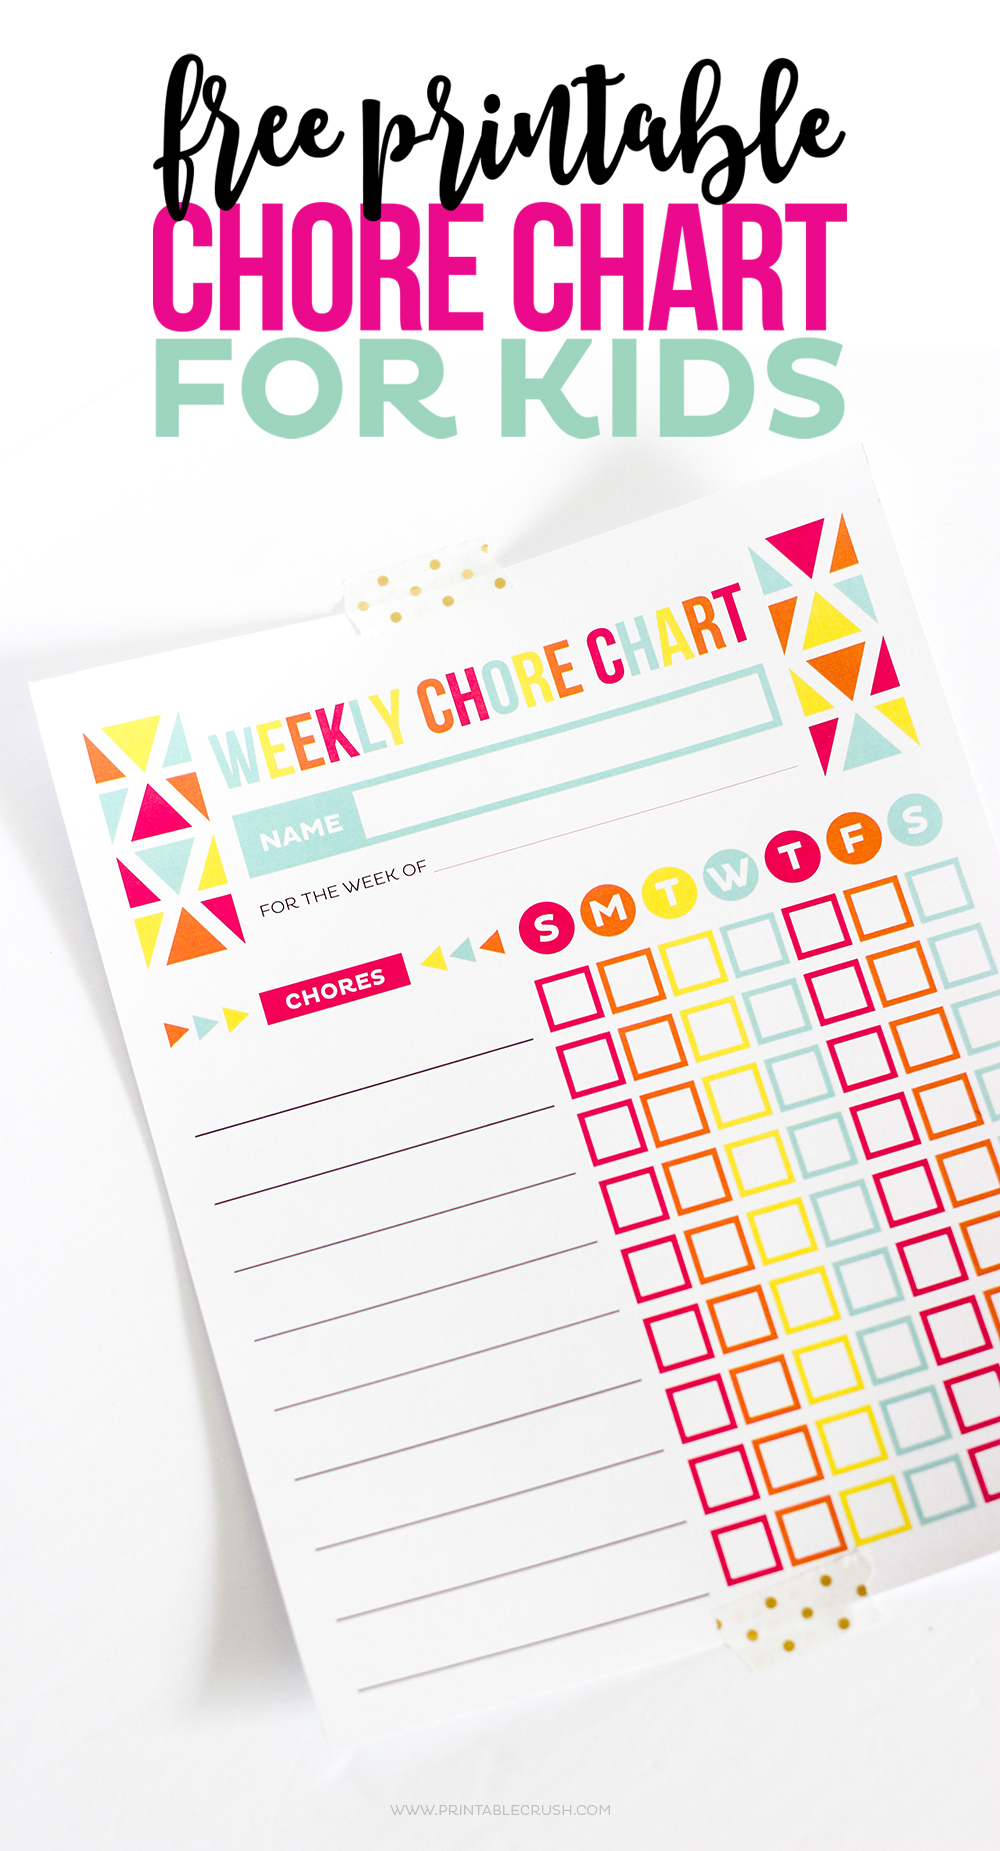 Chore chart tapes to white background with gold dot washi tape